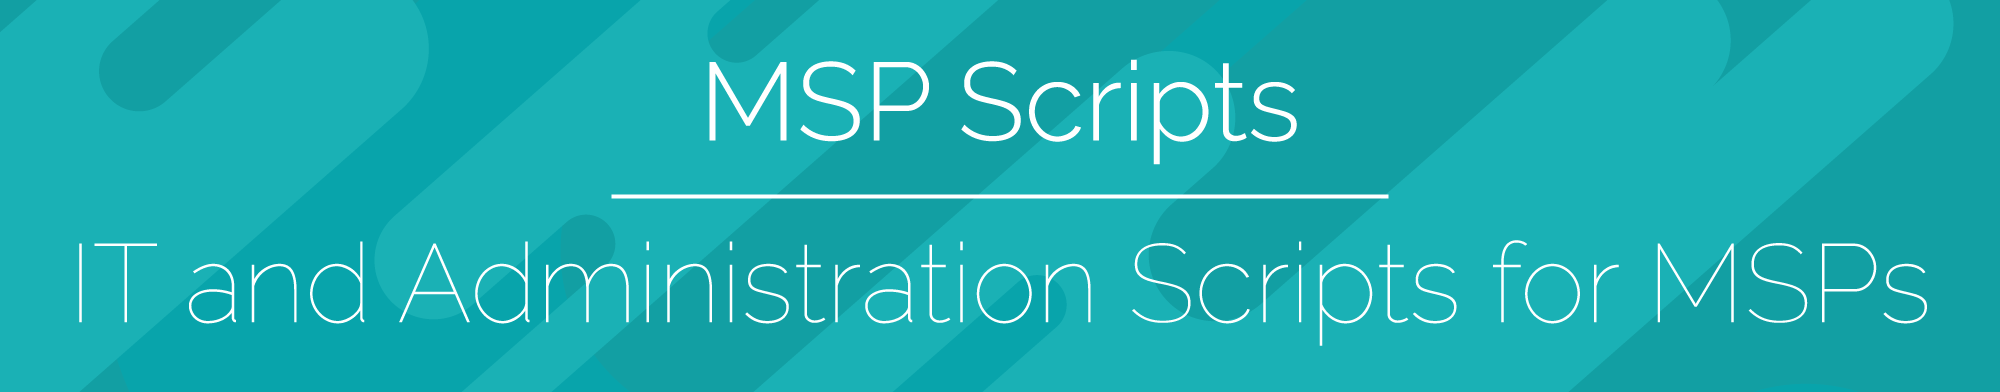 MSPscripts | Awesome scripts for your MSP needs (IT Folks)